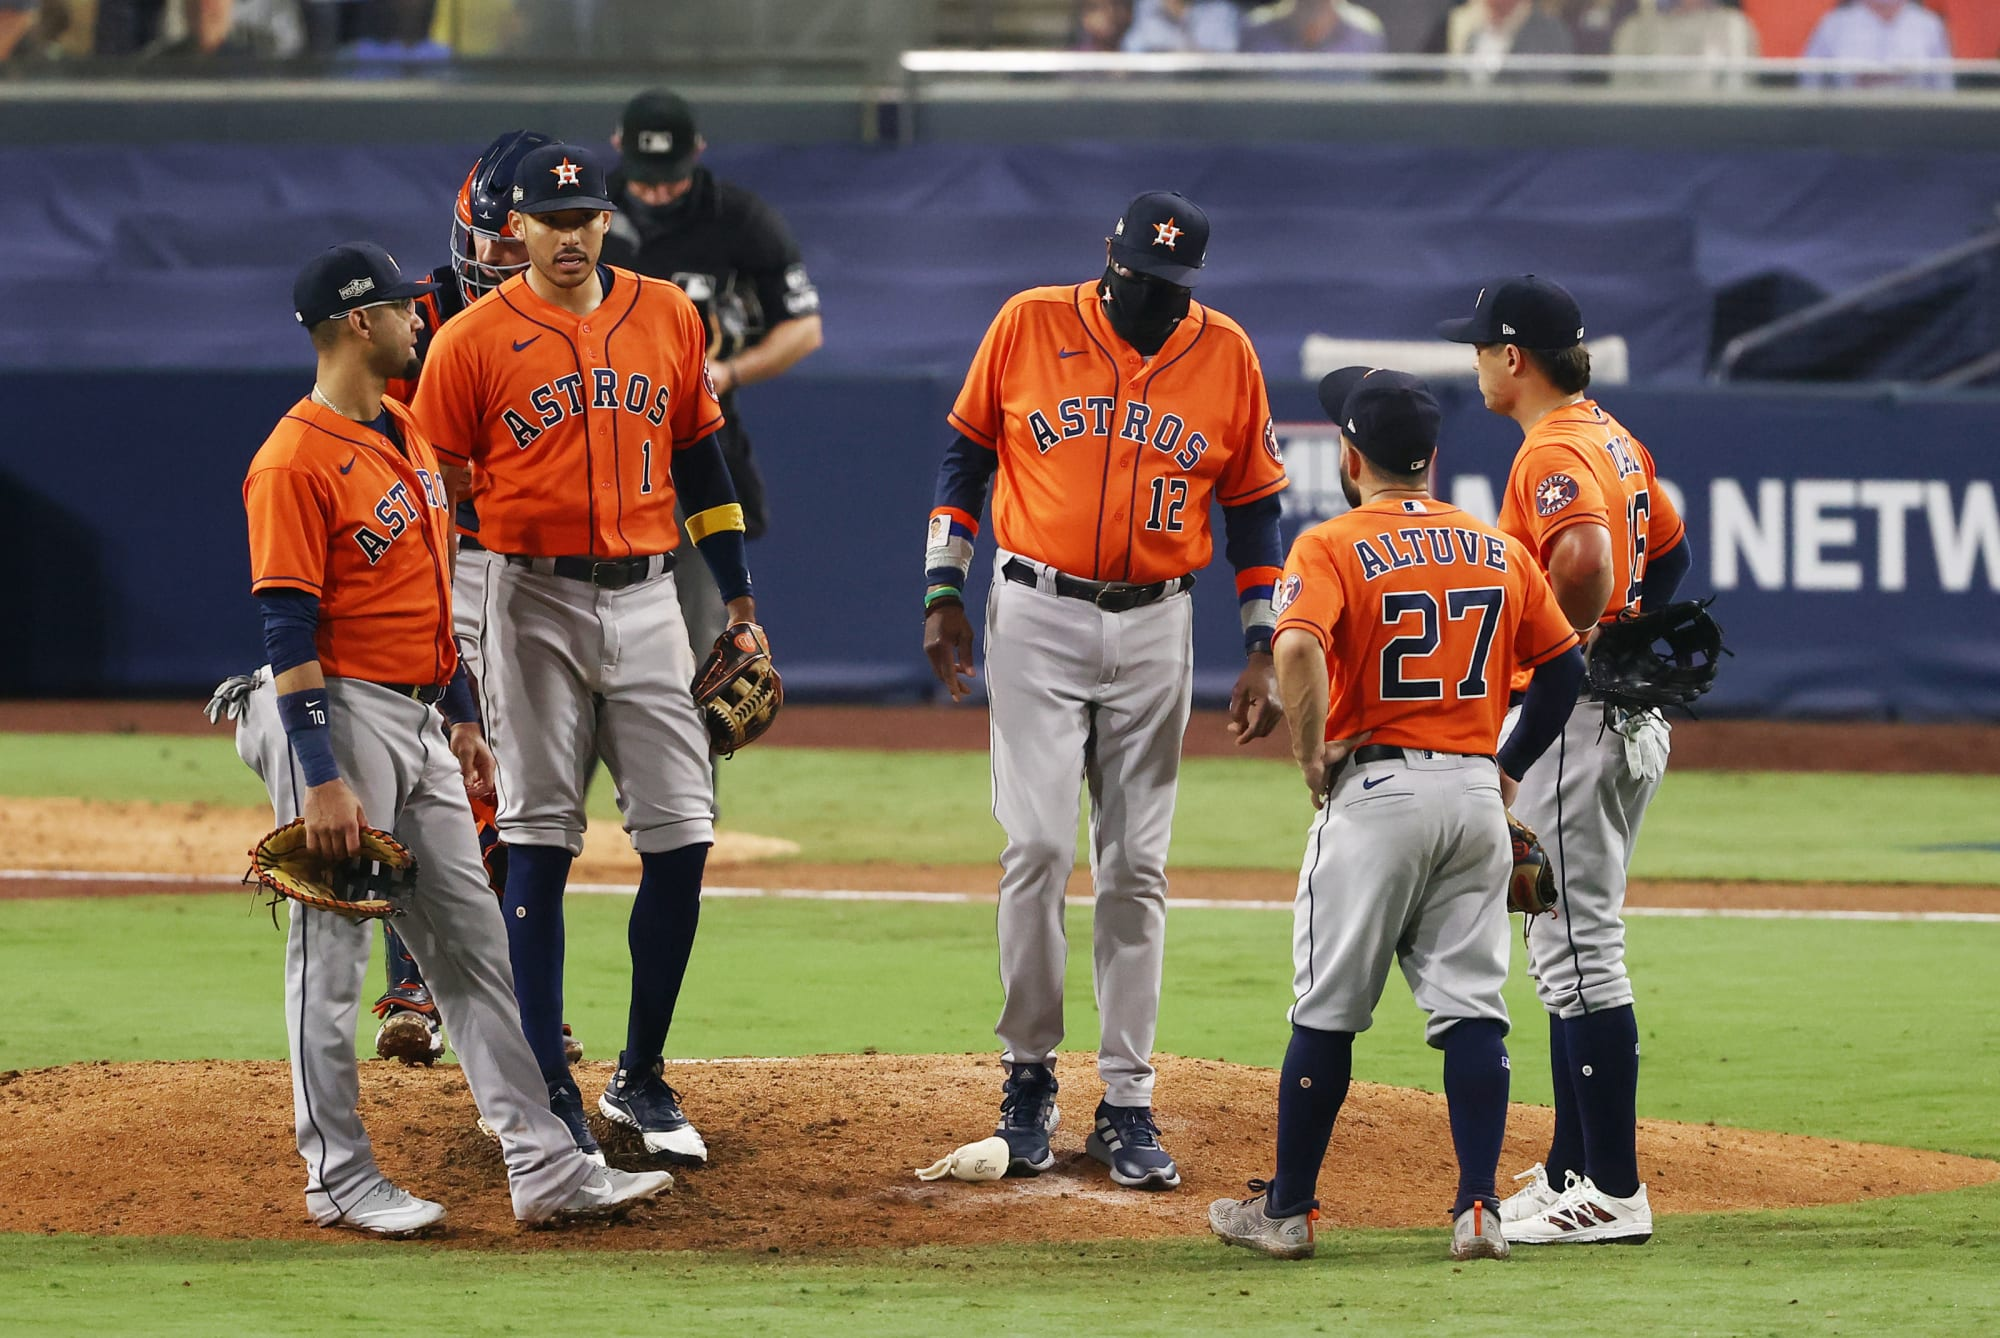 Twitter rejoiced over the cheating Astros being eliminated in Game 7